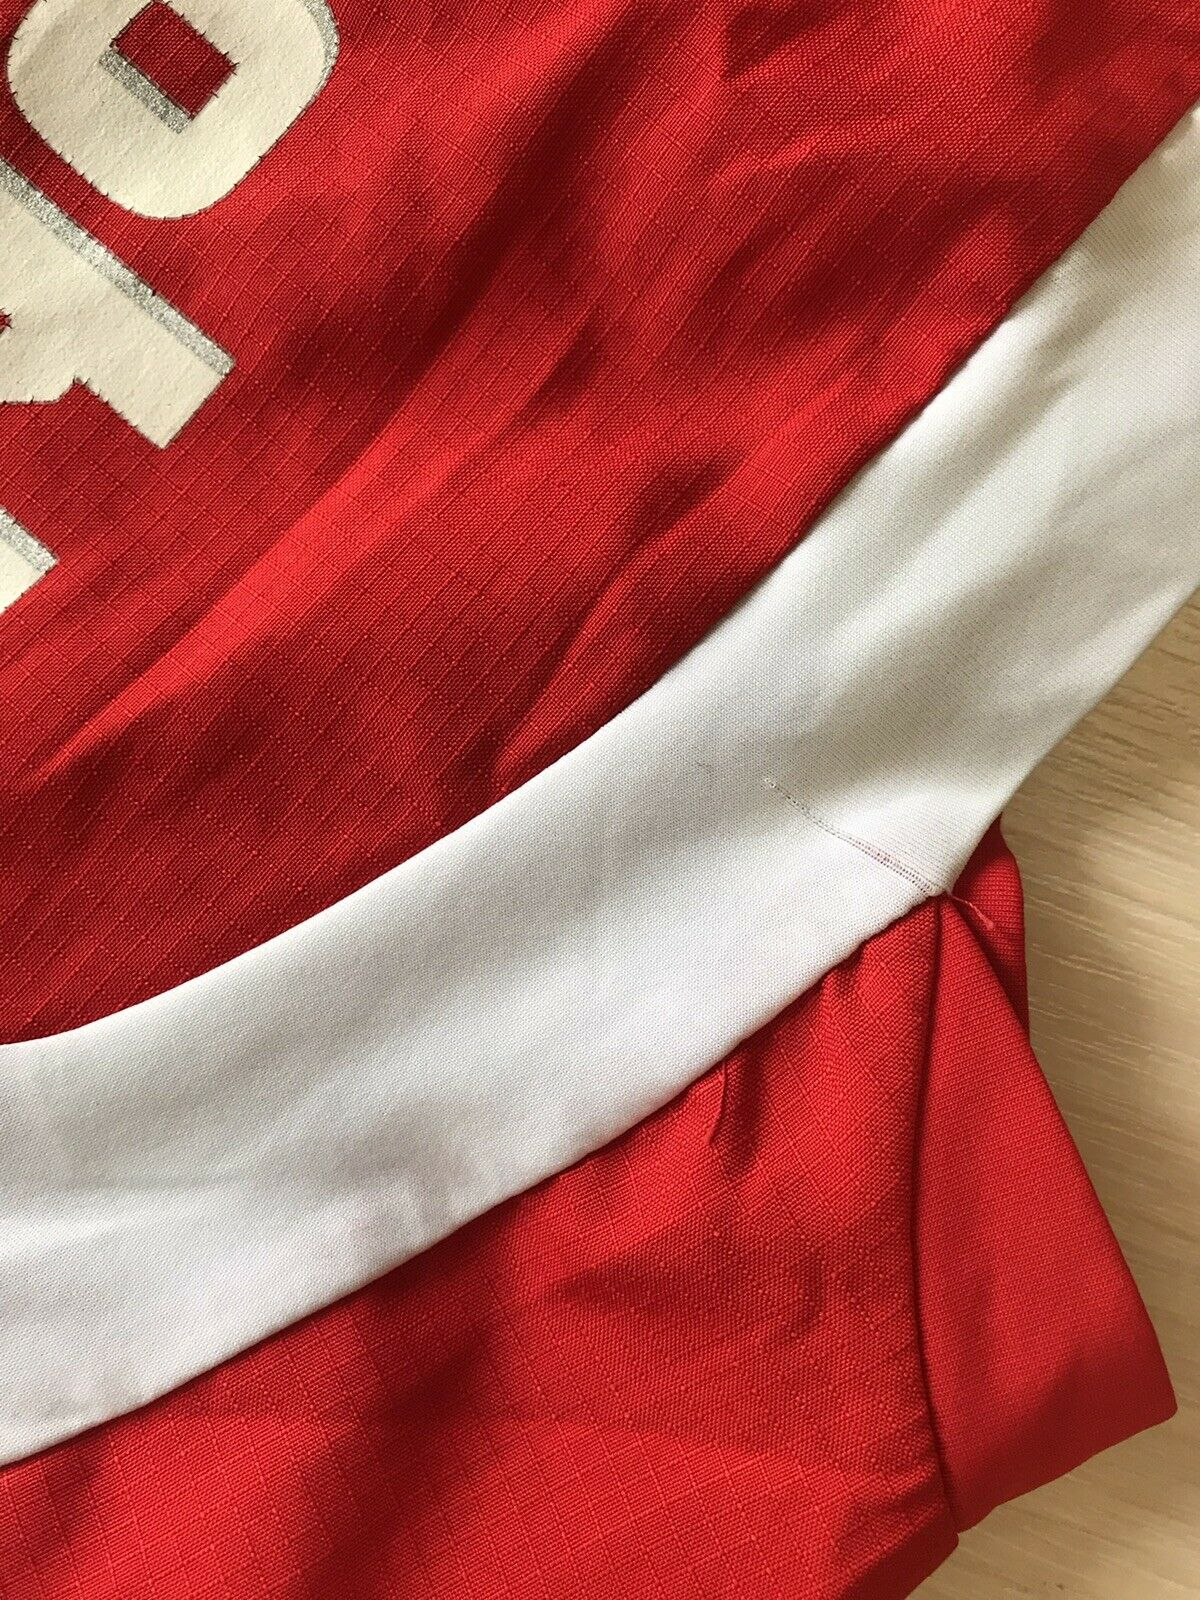 Switzerland team #16 Barnetta 2006/2008 Home Size S Puma jersey